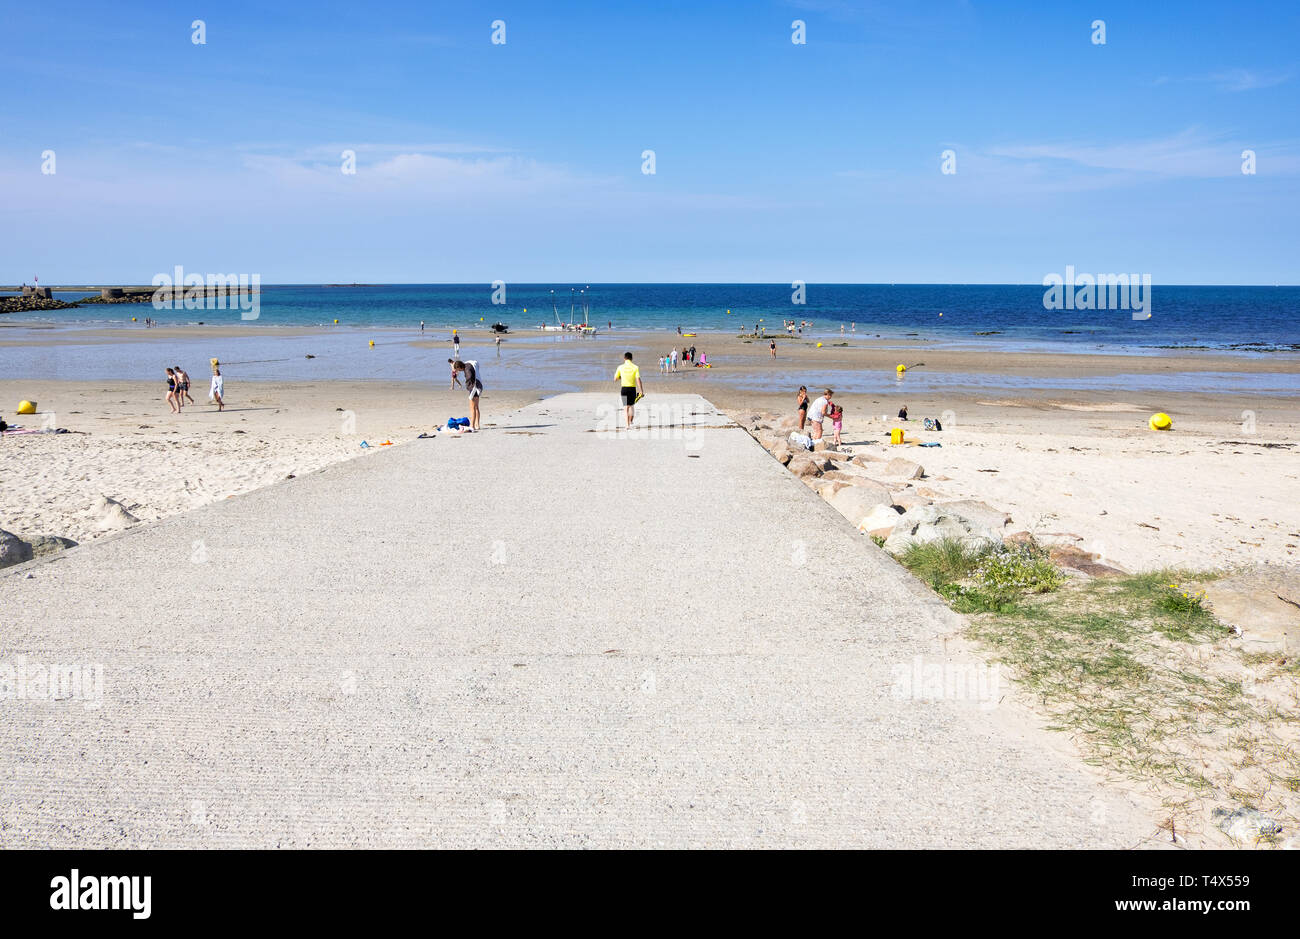 Cherbourg-Octeville, France - August 28, 2018: Children and adults on the beach in Cherbourg. Normandy, France - Stock Image